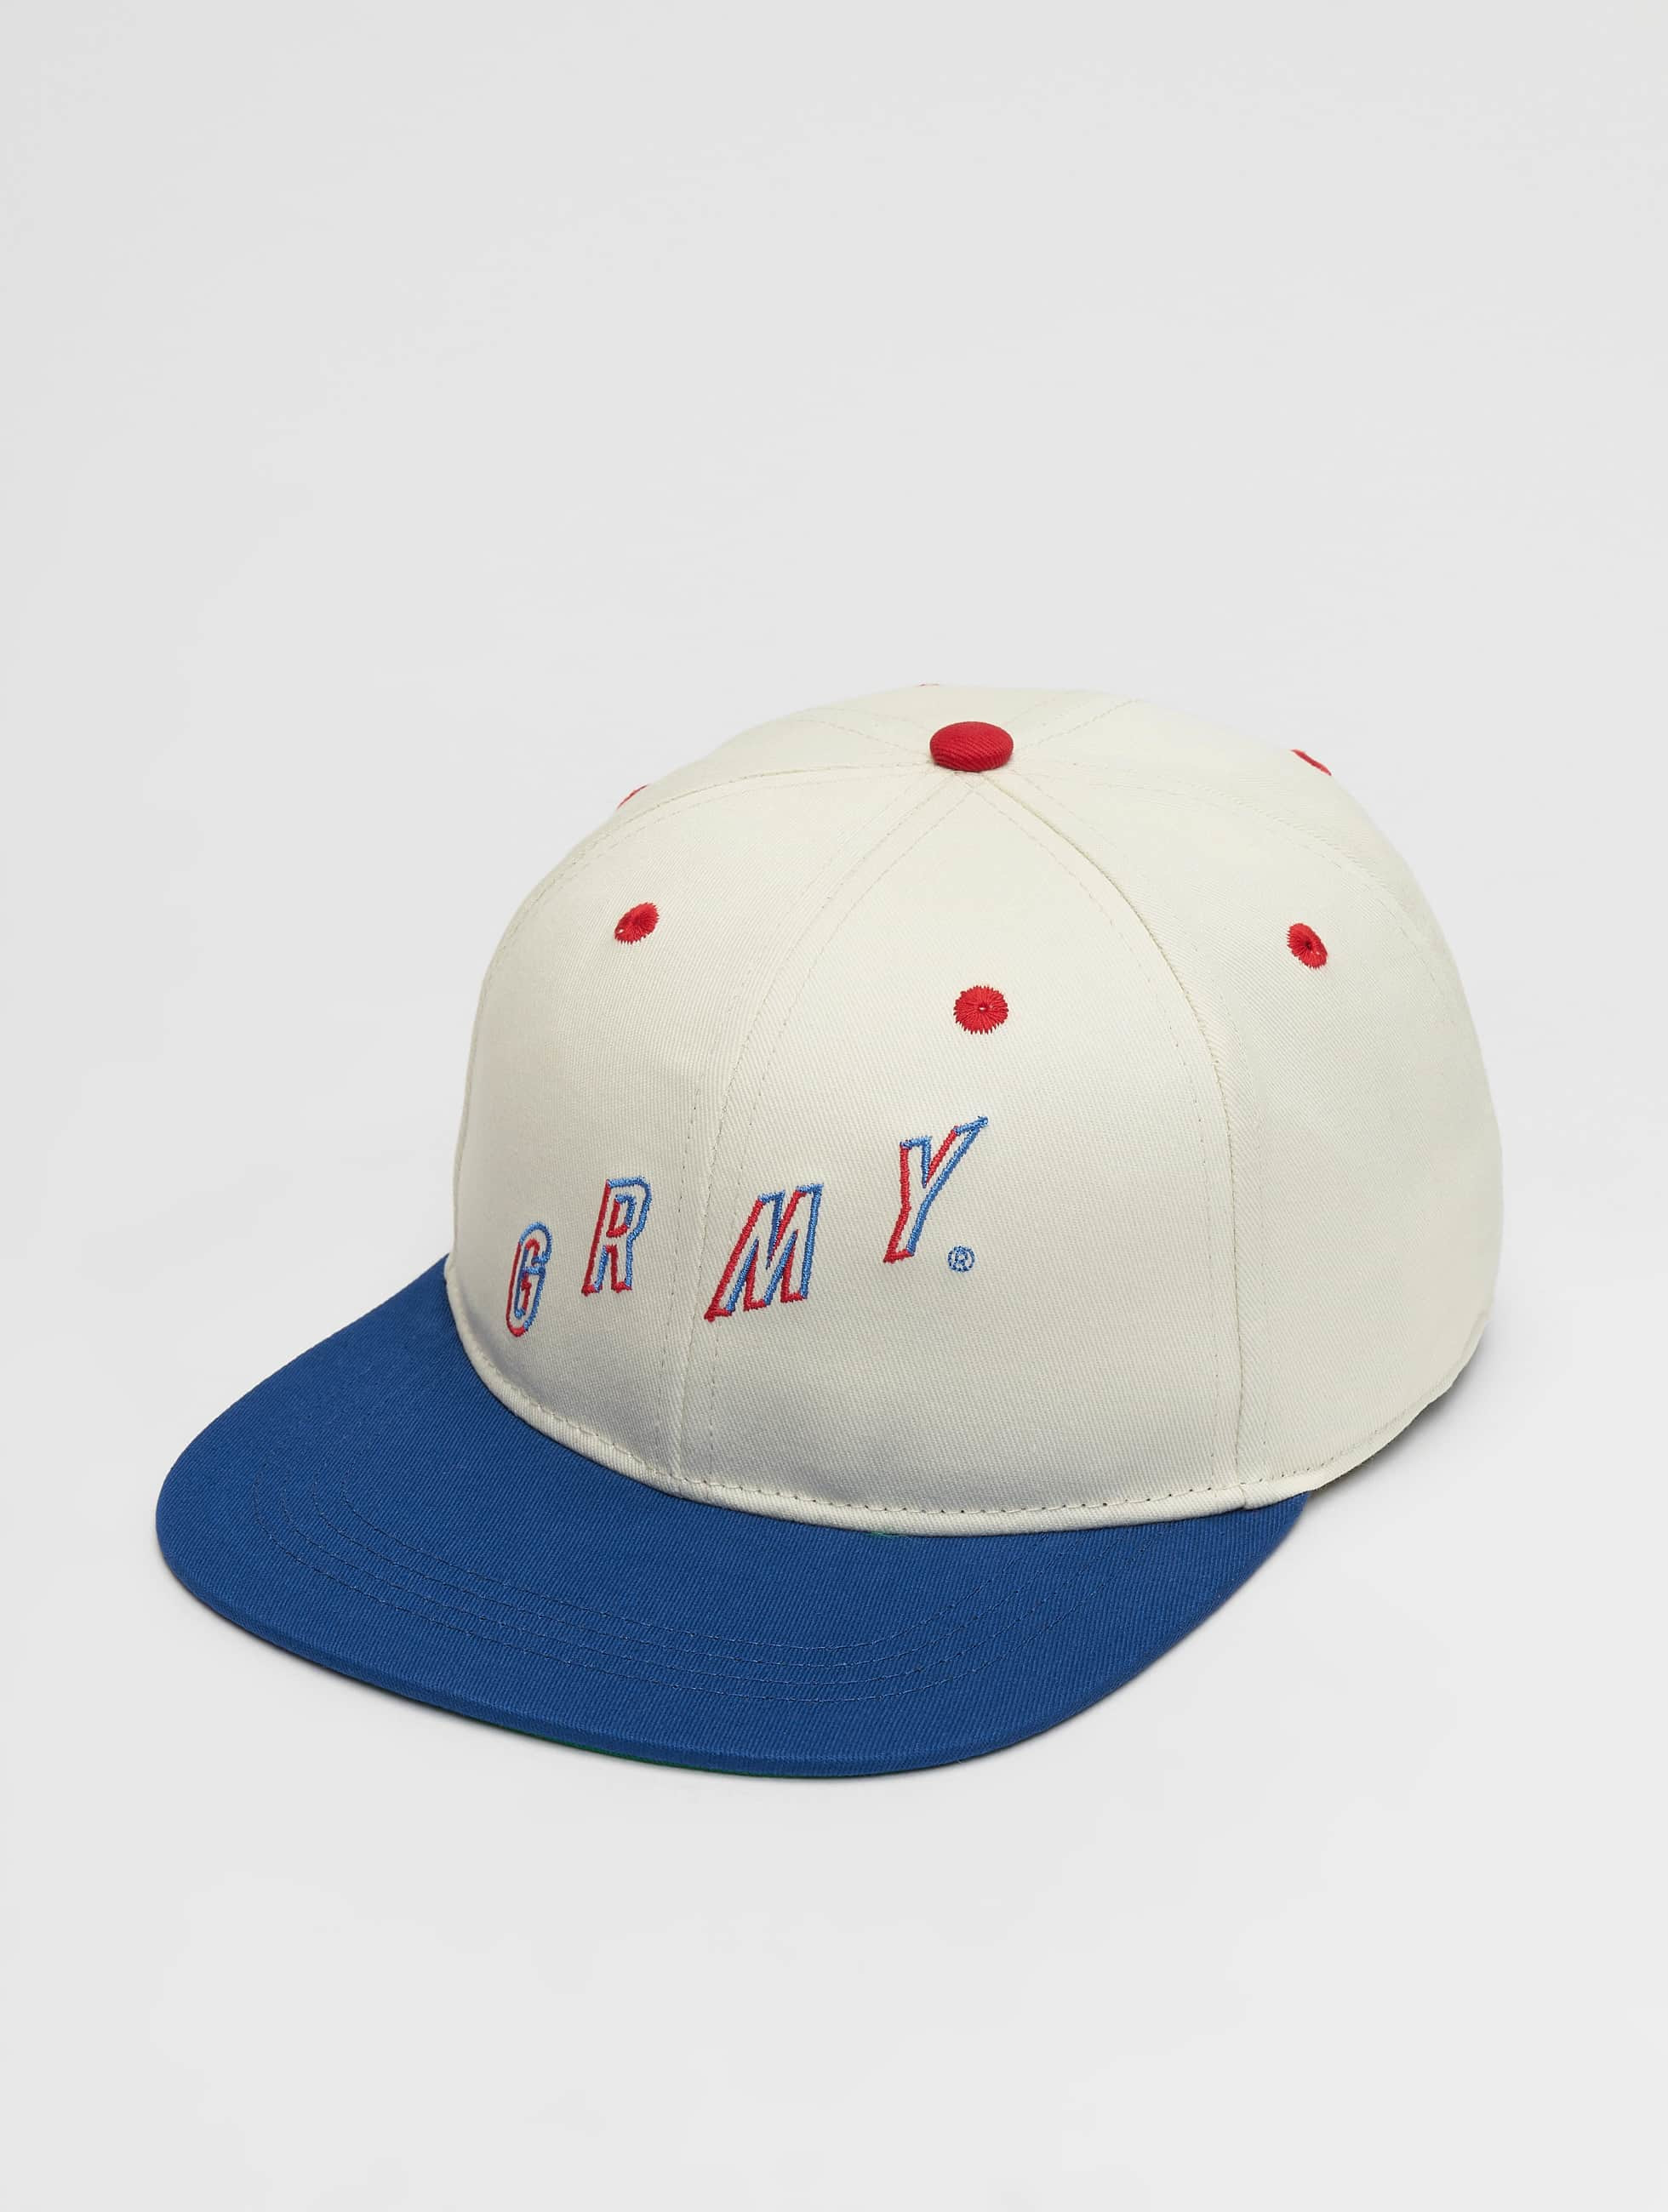 Grimey Wear | F.A.L.A. blanc Homme,Femme Casquette Snapback & Strapback